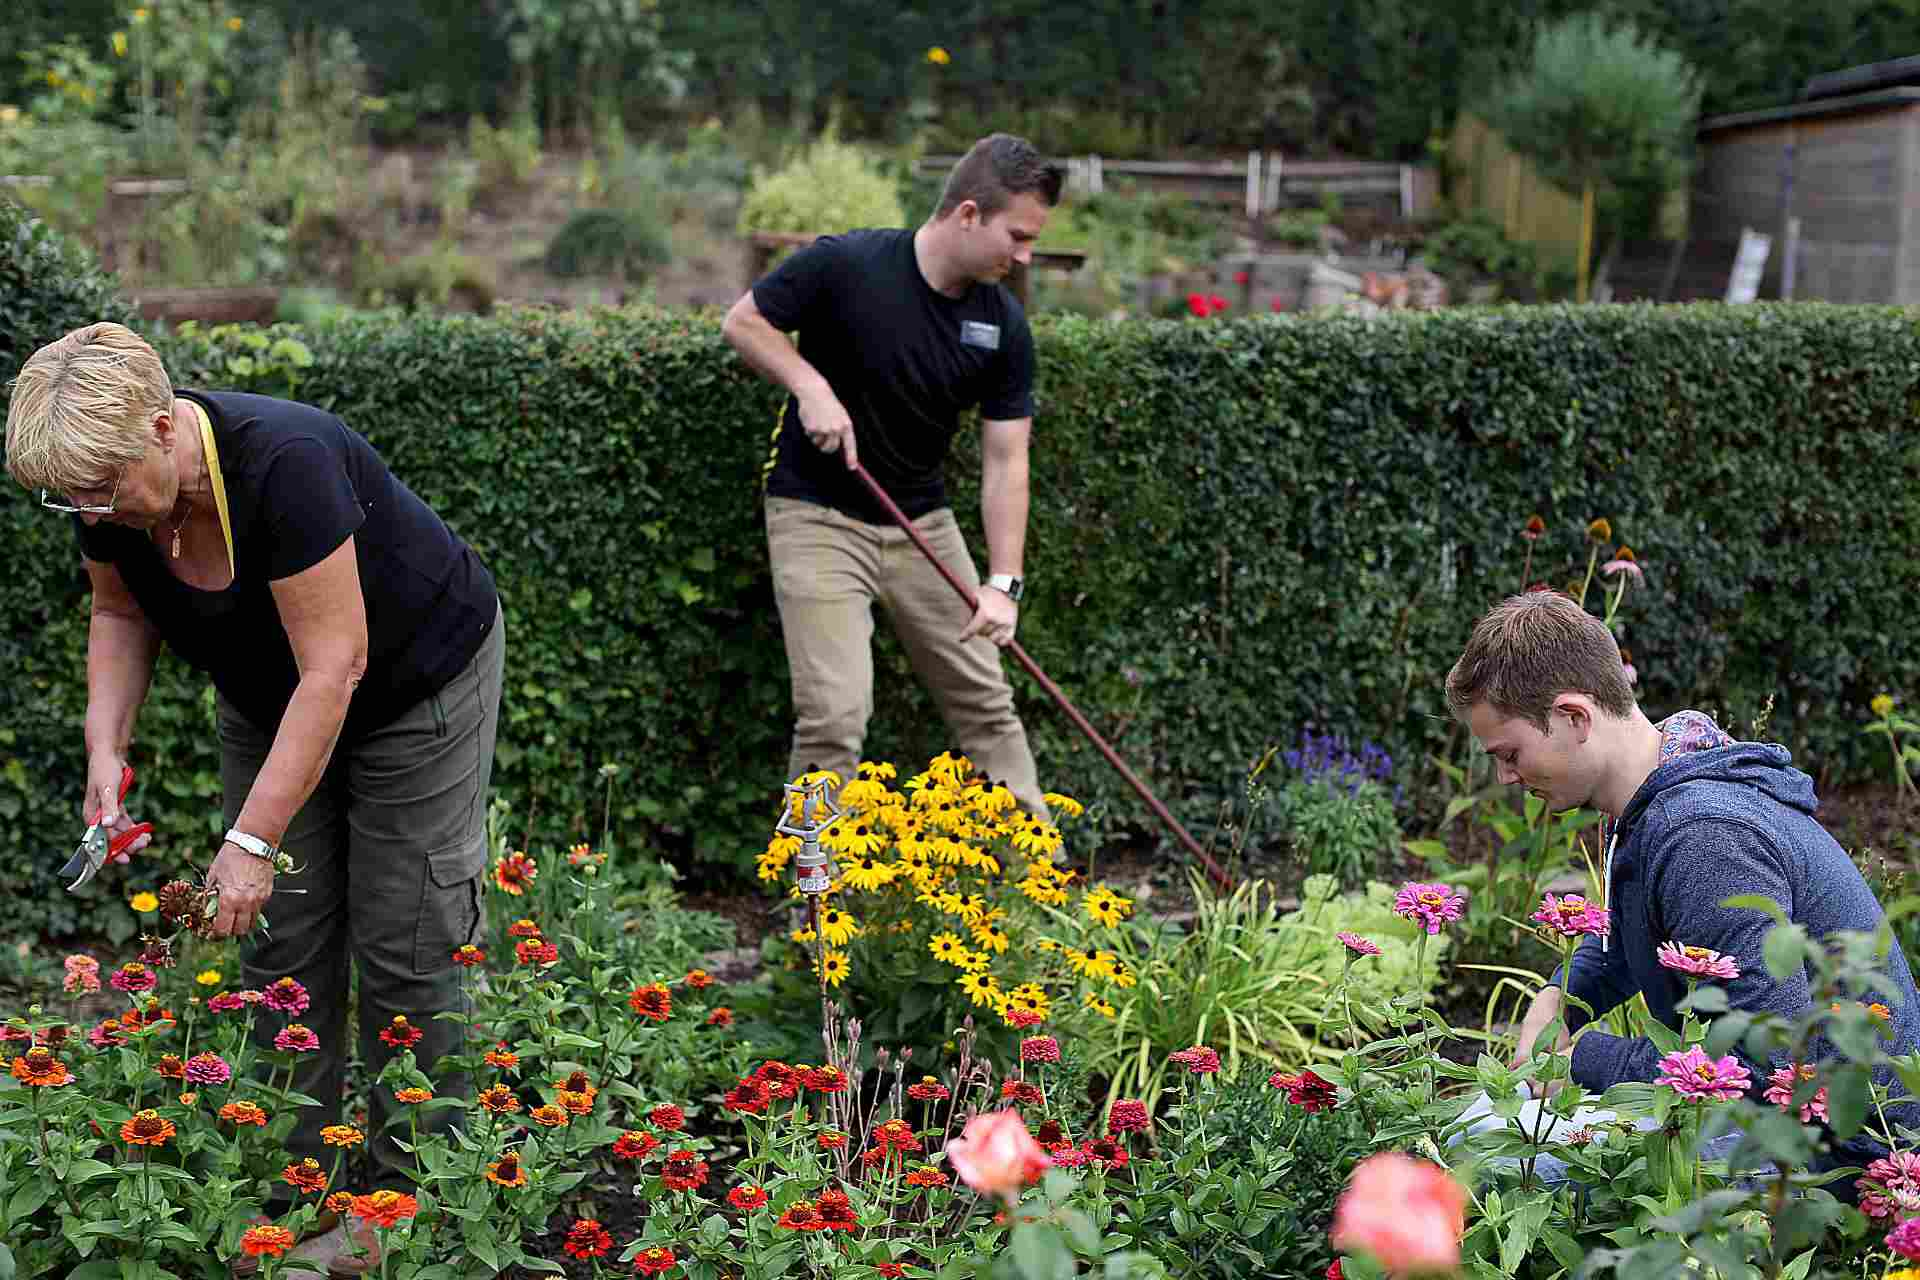 Yard work service being done by missionaries